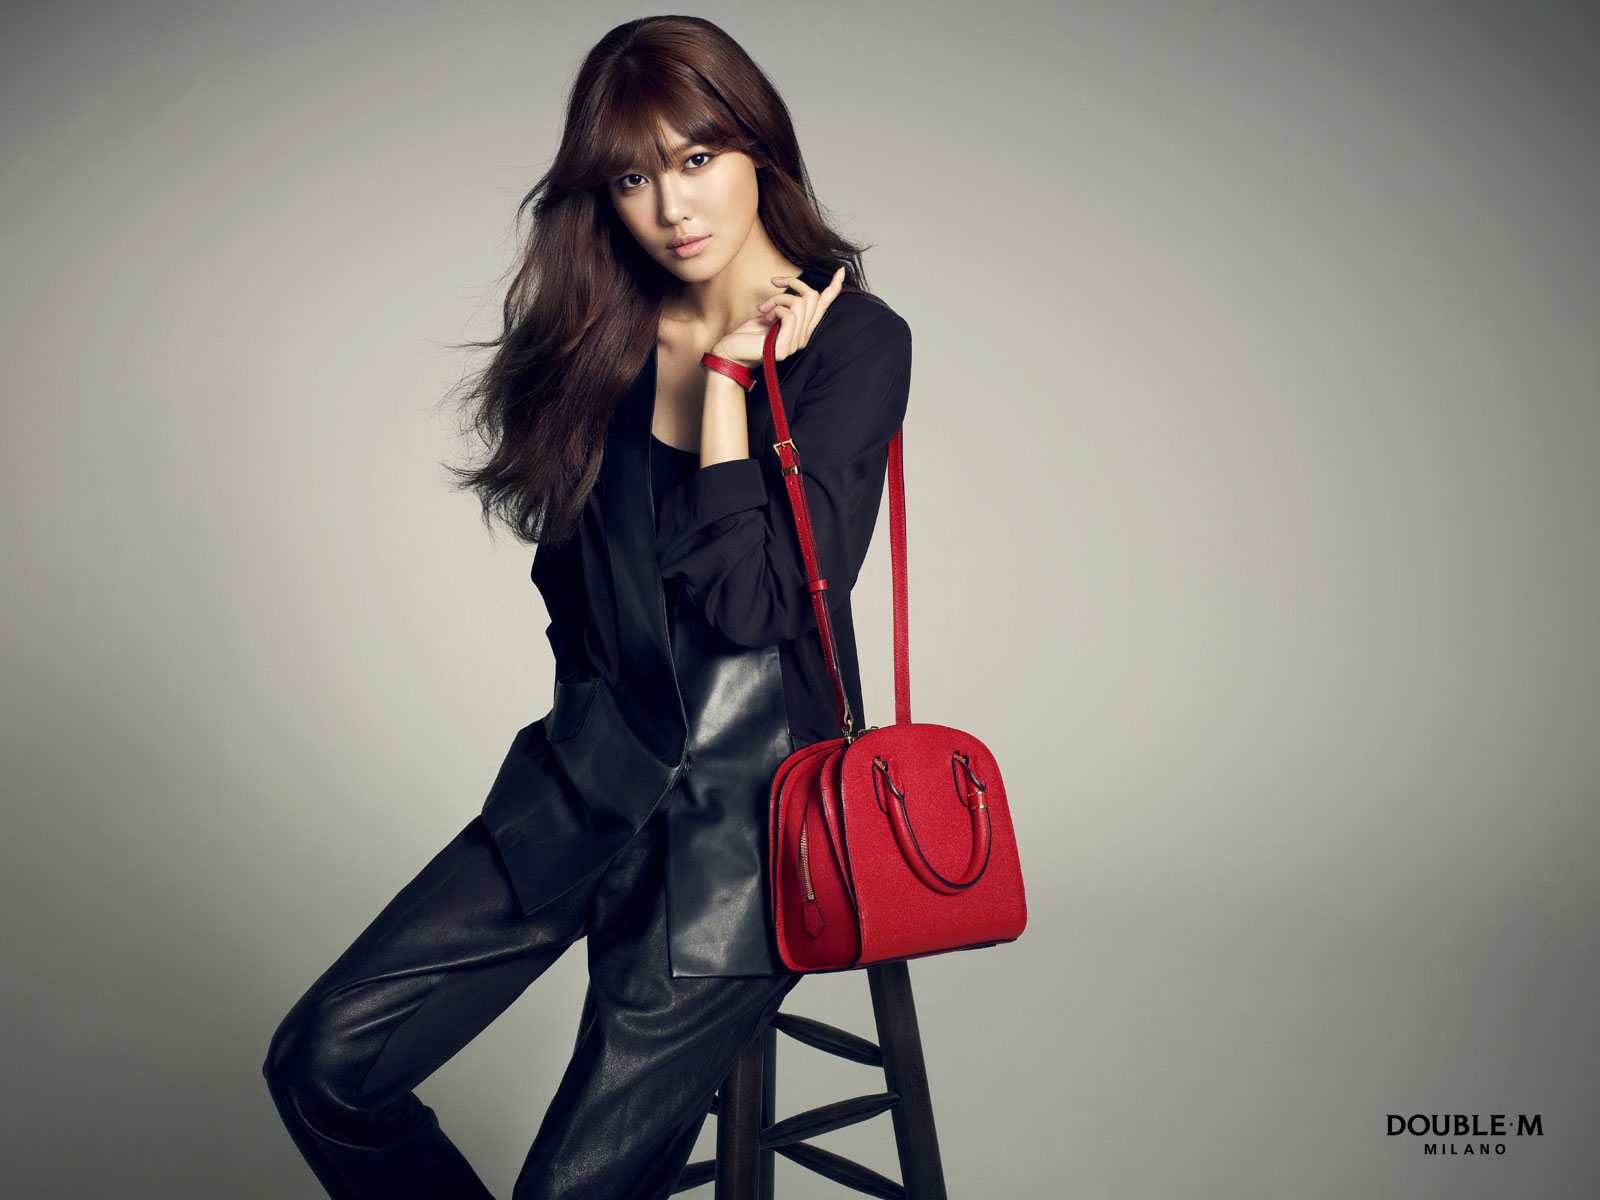 Snsd Sooyoung Double M Wallpaper Pretty Photos And Videos